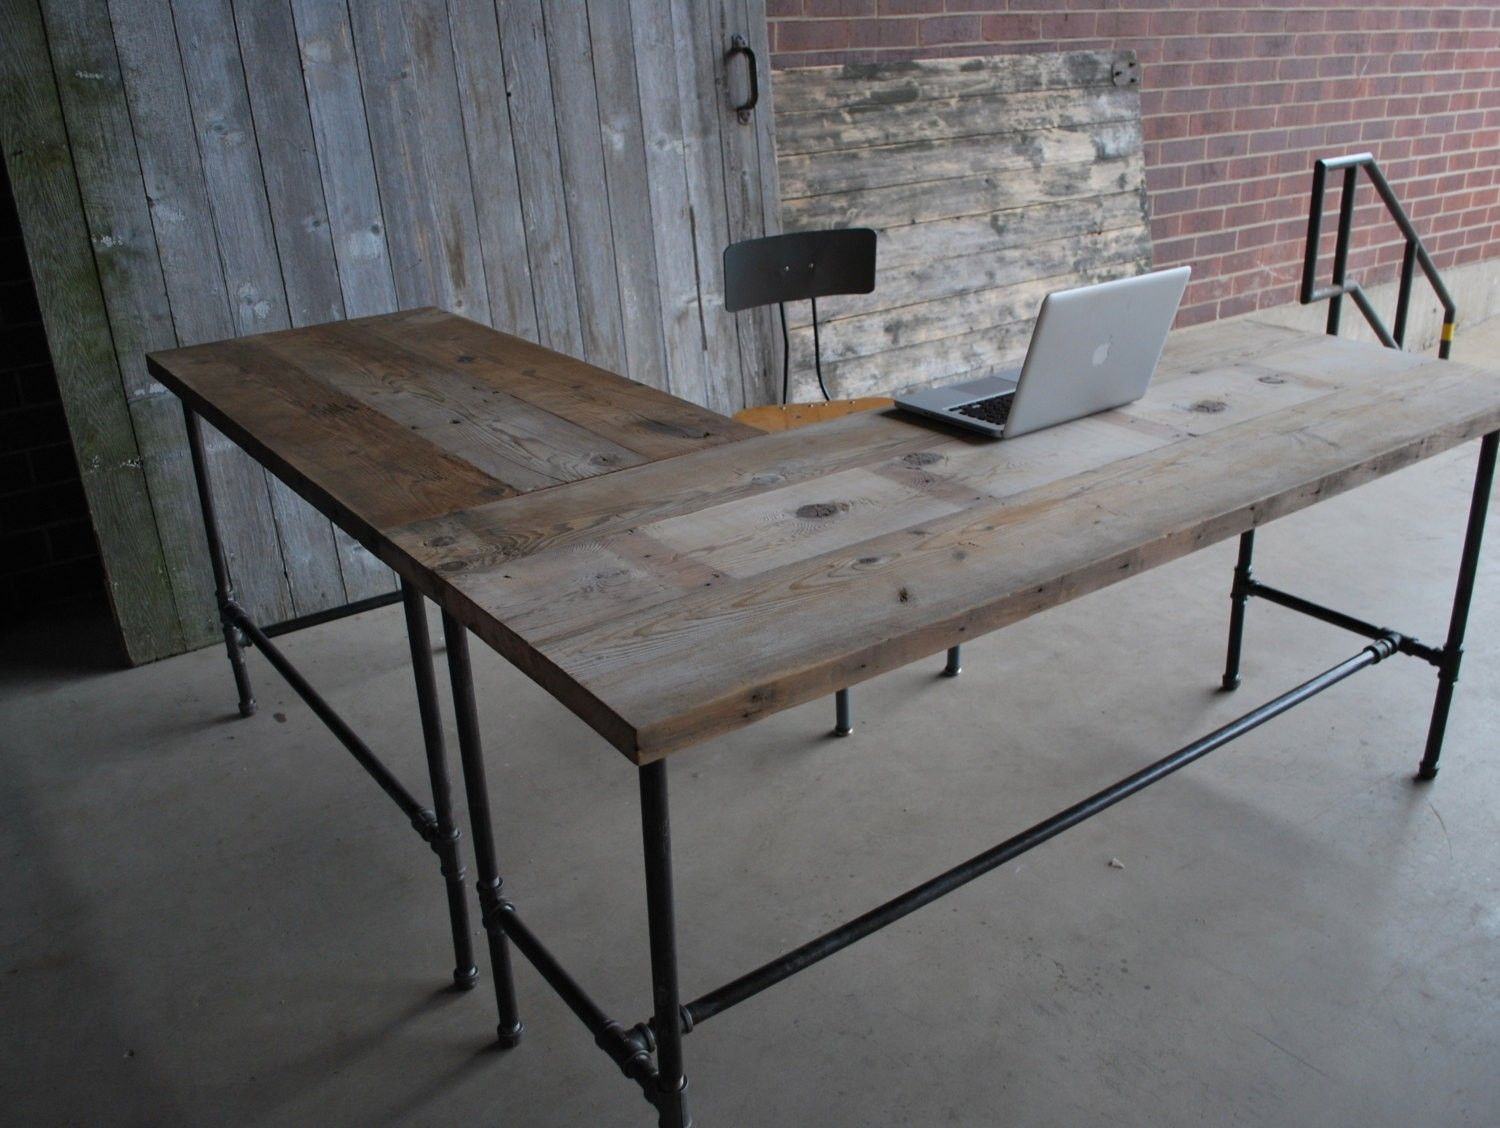 Rustic L Shaped Unfinish Wooden Desk With Steel Pipe Table Legs And  Stretcher  Popular Rustic   Reclaimed Wood DeskSmall Home Office FurnitureSmall. Rustic L Shaped Unfinish Wooden Desk With Steel Pipe Table Legs